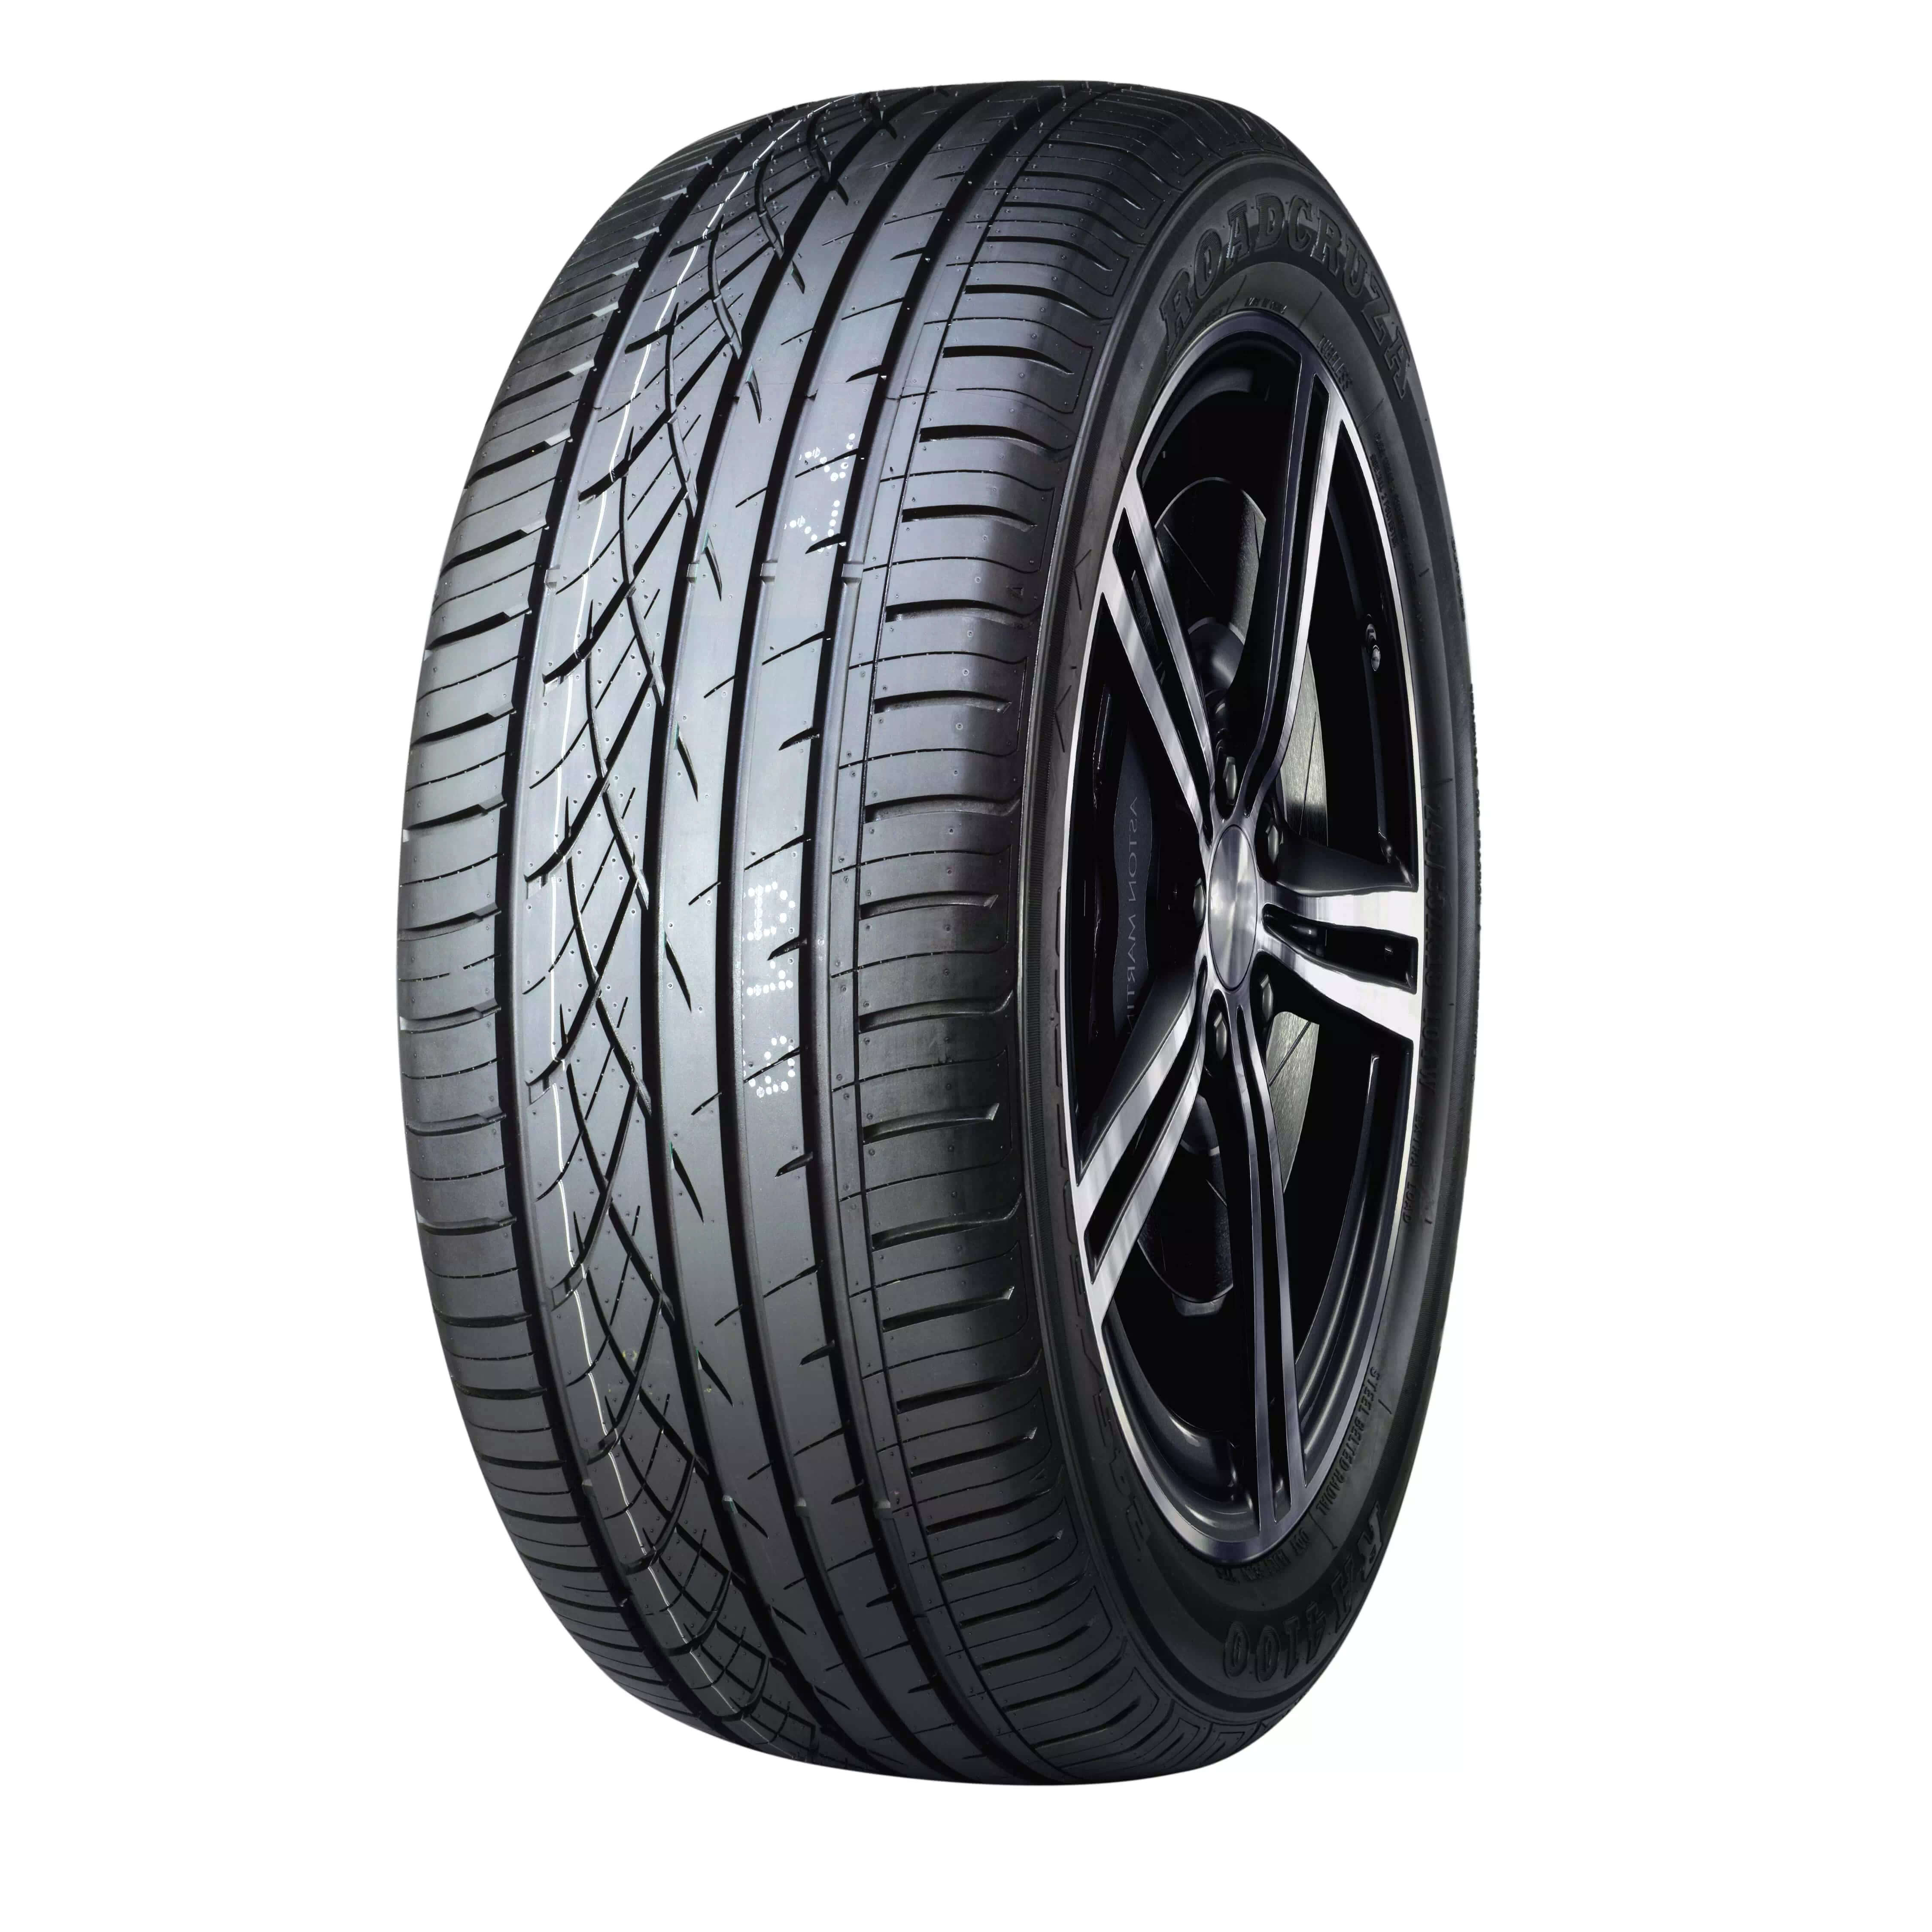 UltraMile UM 4X4 LUXE 255/55 R 18 Tubeless 109 W  Car Tyre